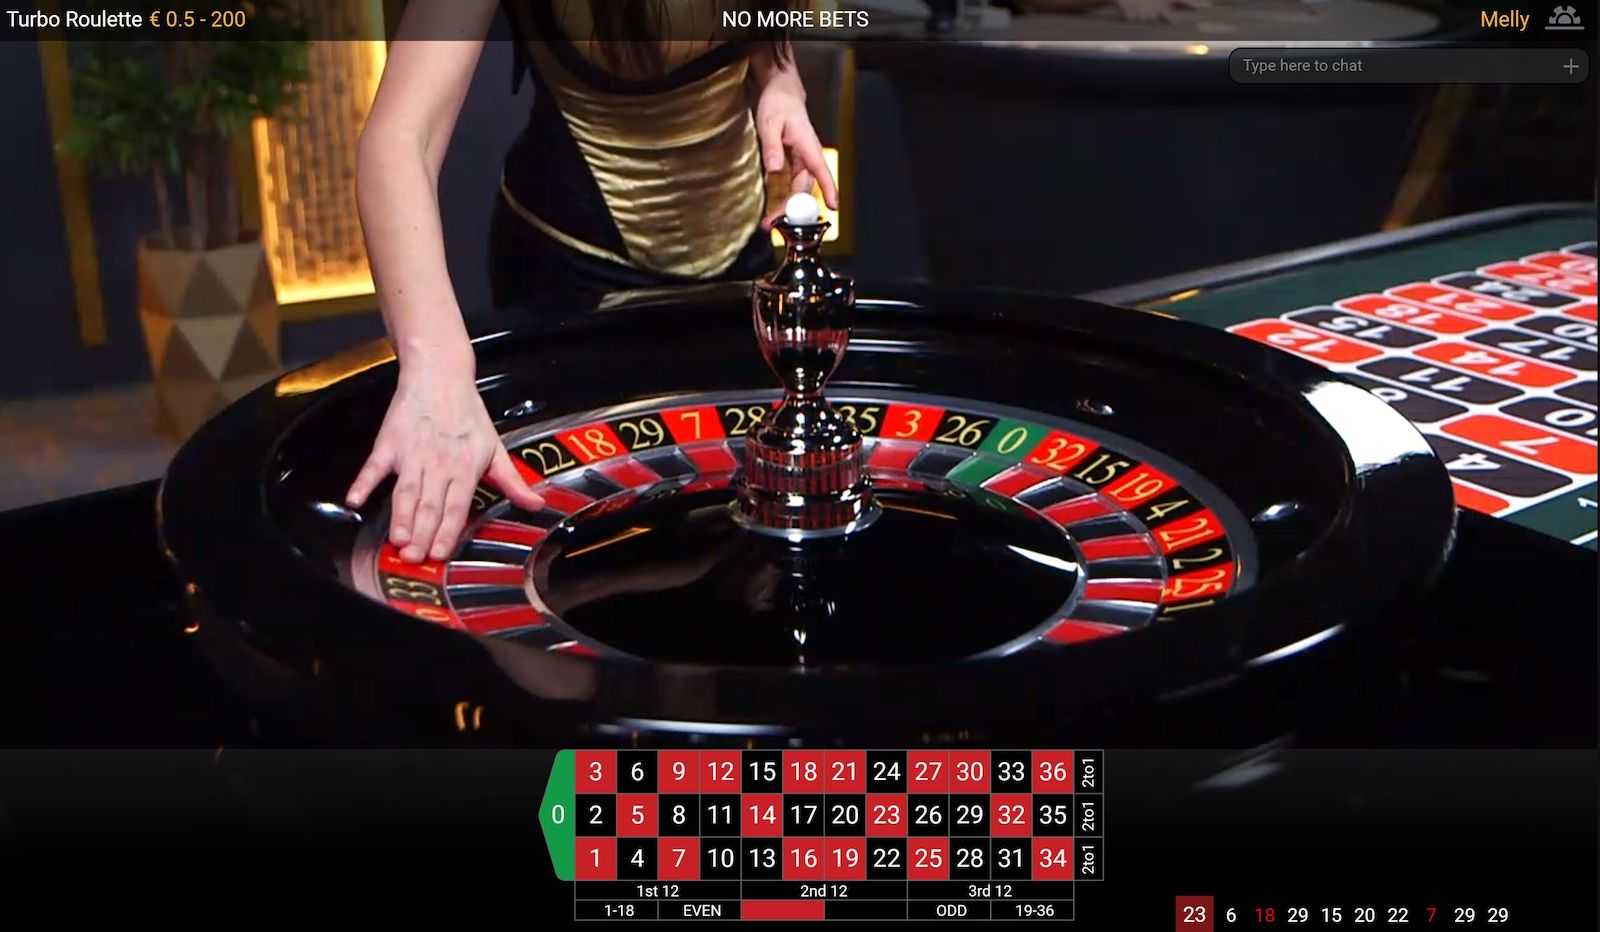 Spin the Wheel: The technology behind Roulette casino games - TechStory